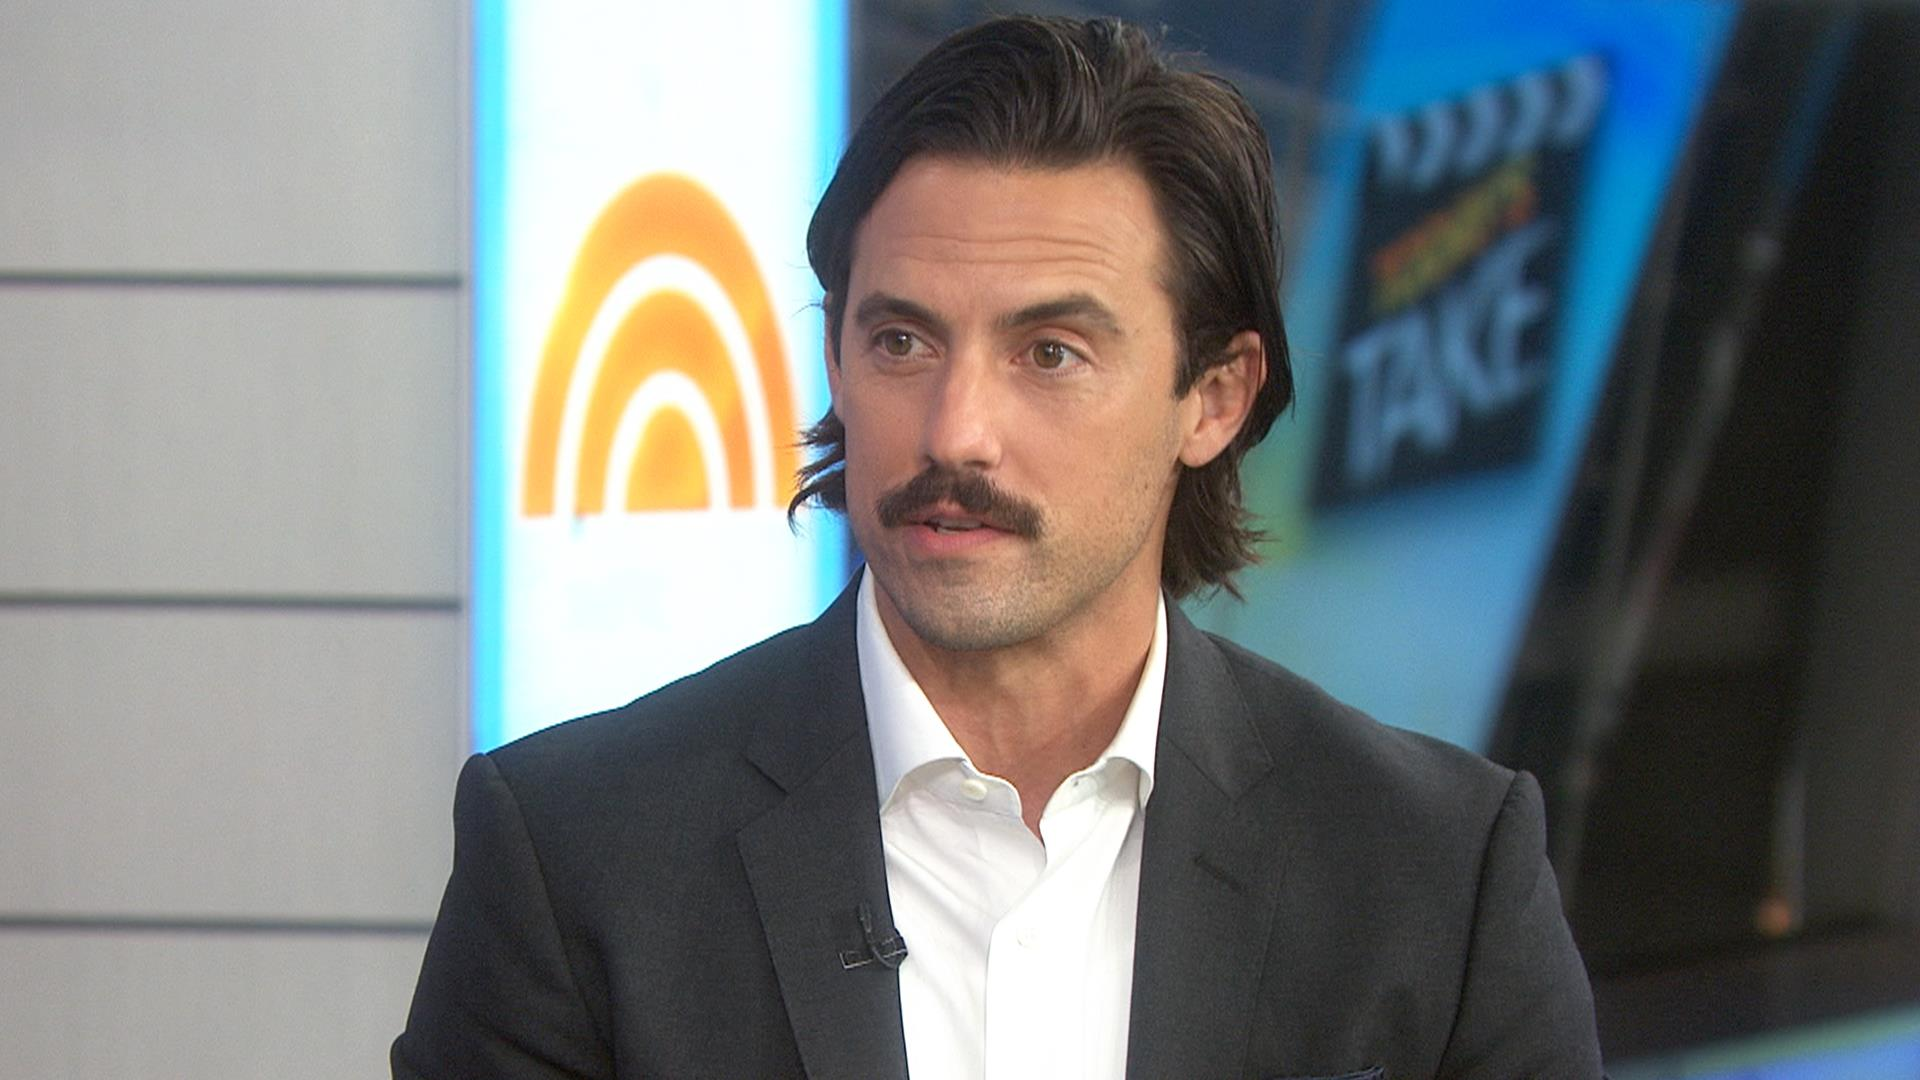 Afghanistan Turning People Whose >> Milo Ventimiglia: Why 'This Is Us' is relatable for everyone - TODAY.com